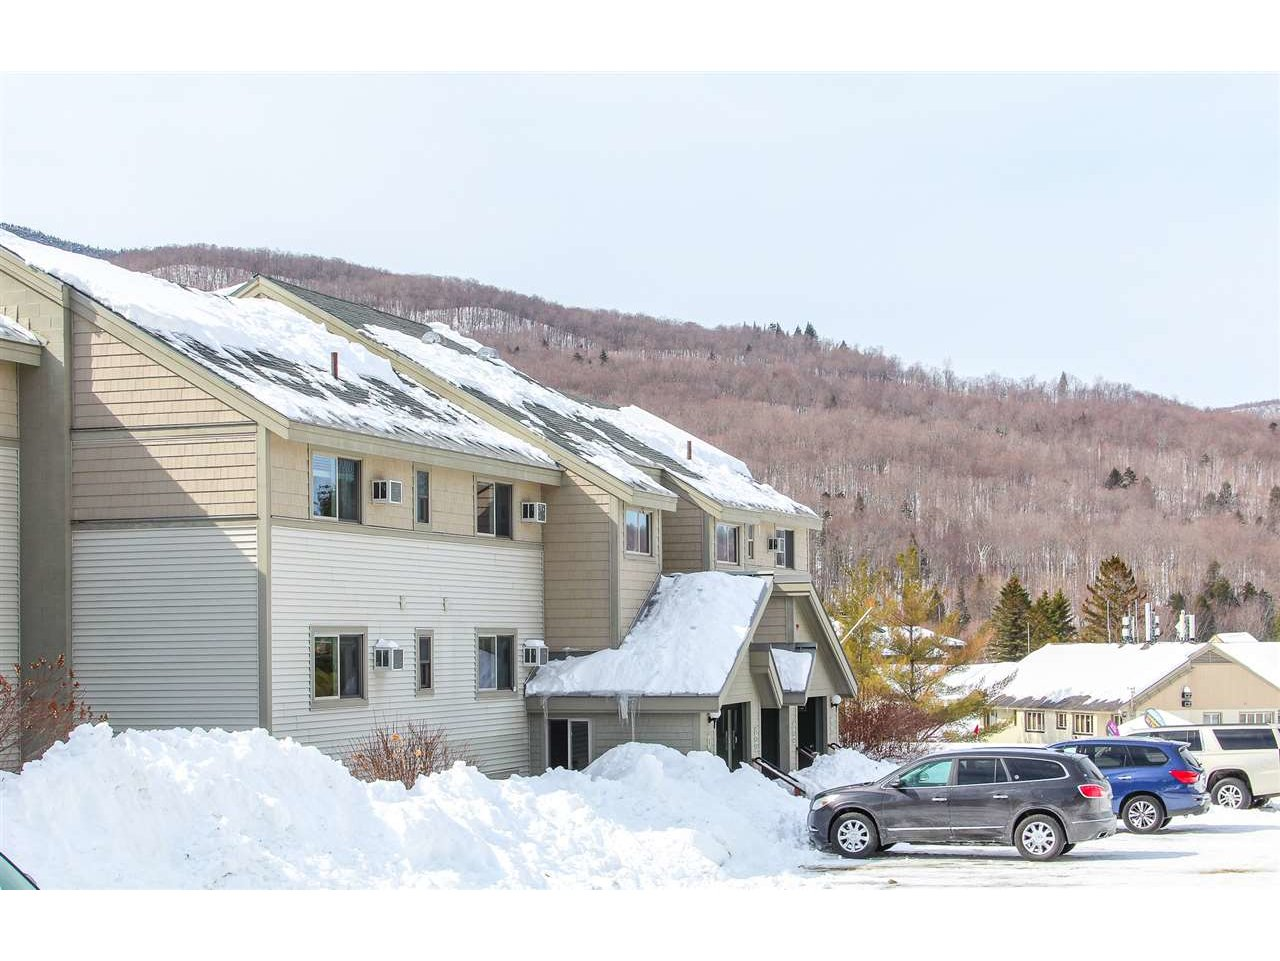 39 Slopeside at Smugglers Notch Resort, Cambridge